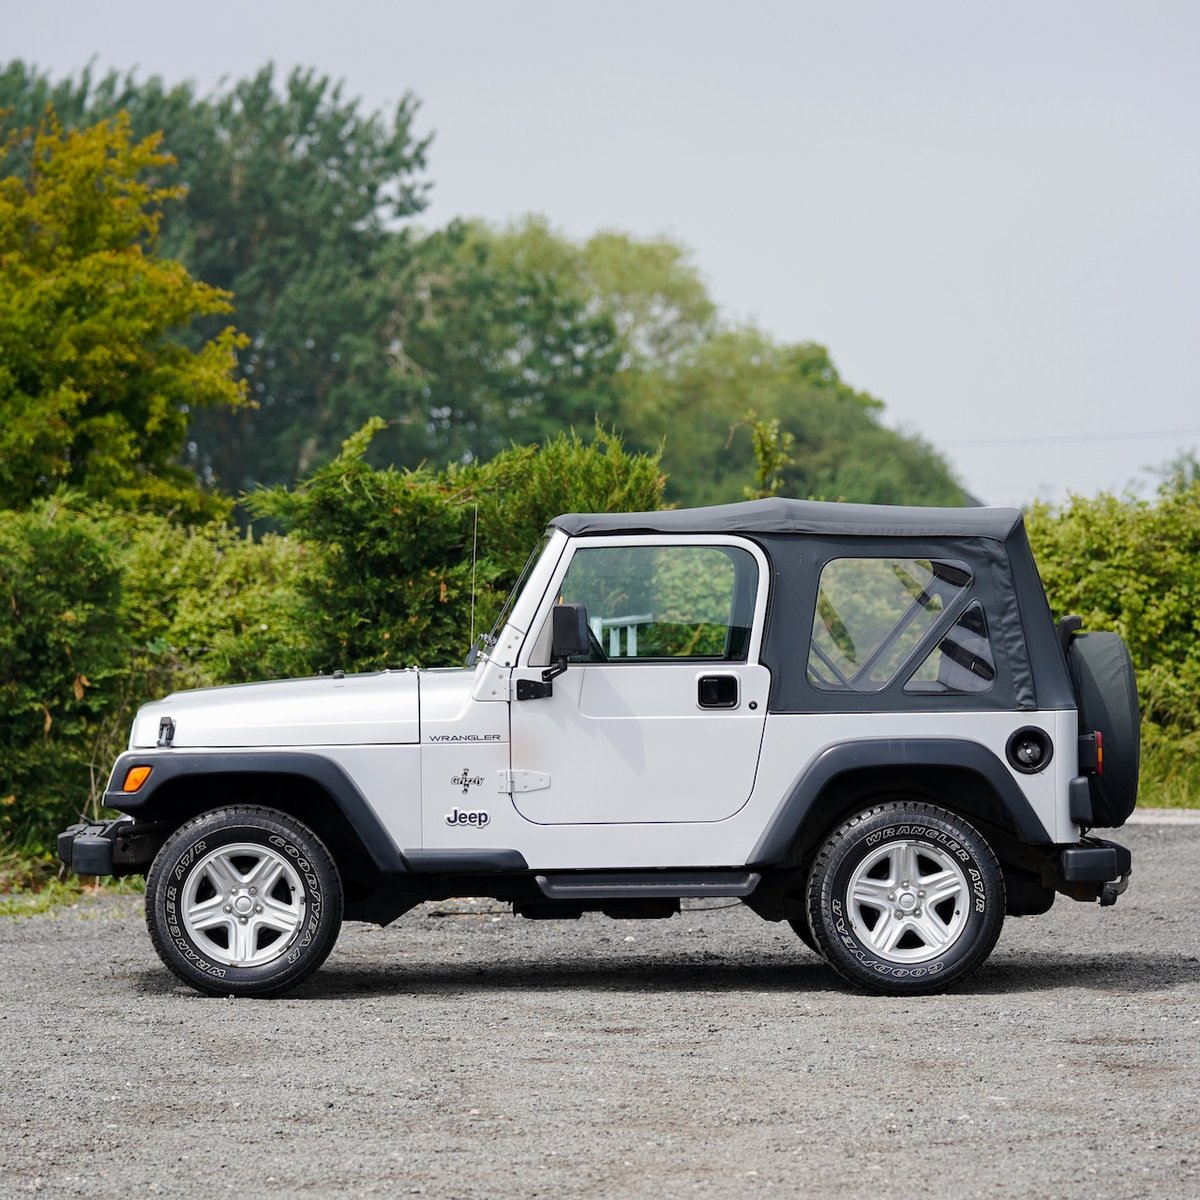 2002 Jeep Wrangler 4.0 Grizzly 57,000 Miles from New For Sale (picture 2 of 6)